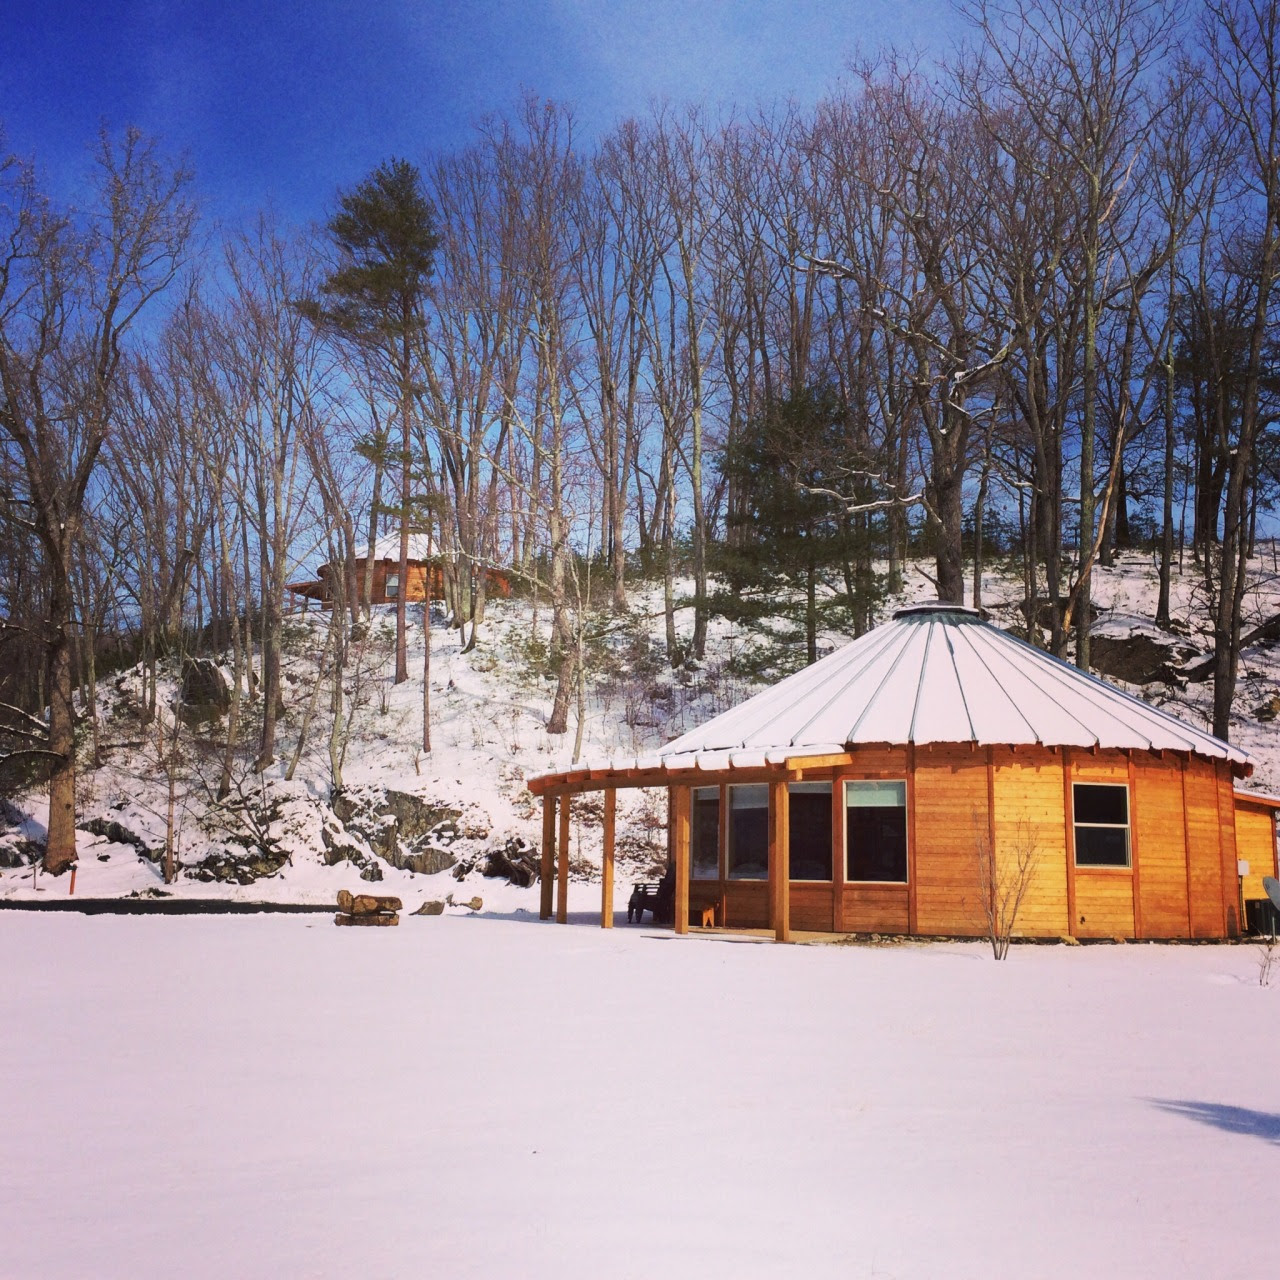 Yurt in snowy Virginia Douglas Dear / roseriverfarm.com